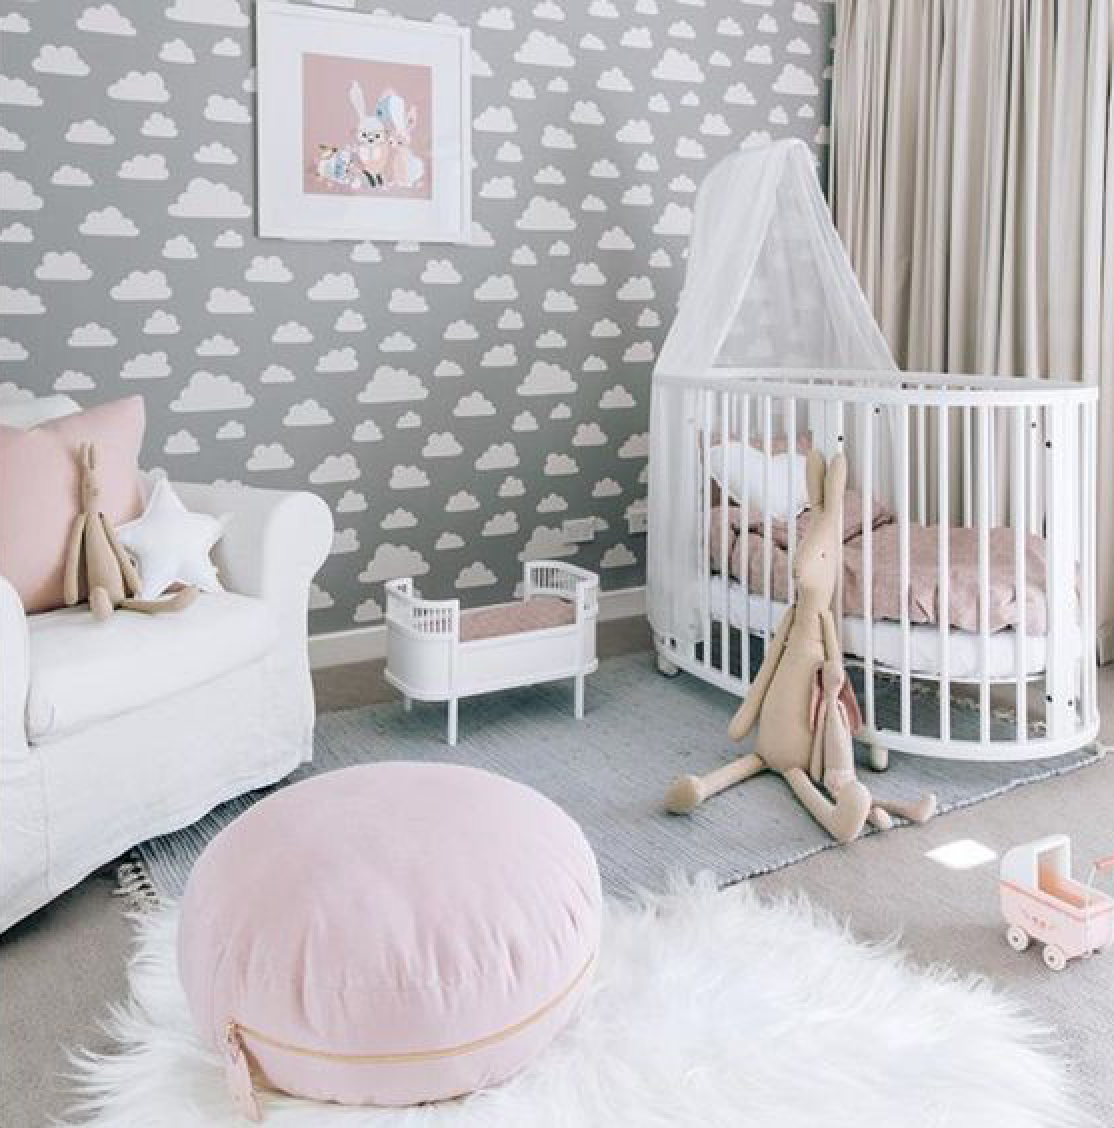 Find The Best Kids Furniture To Create Na Amazing Nursery Your Baby Discover More Like This At Circu